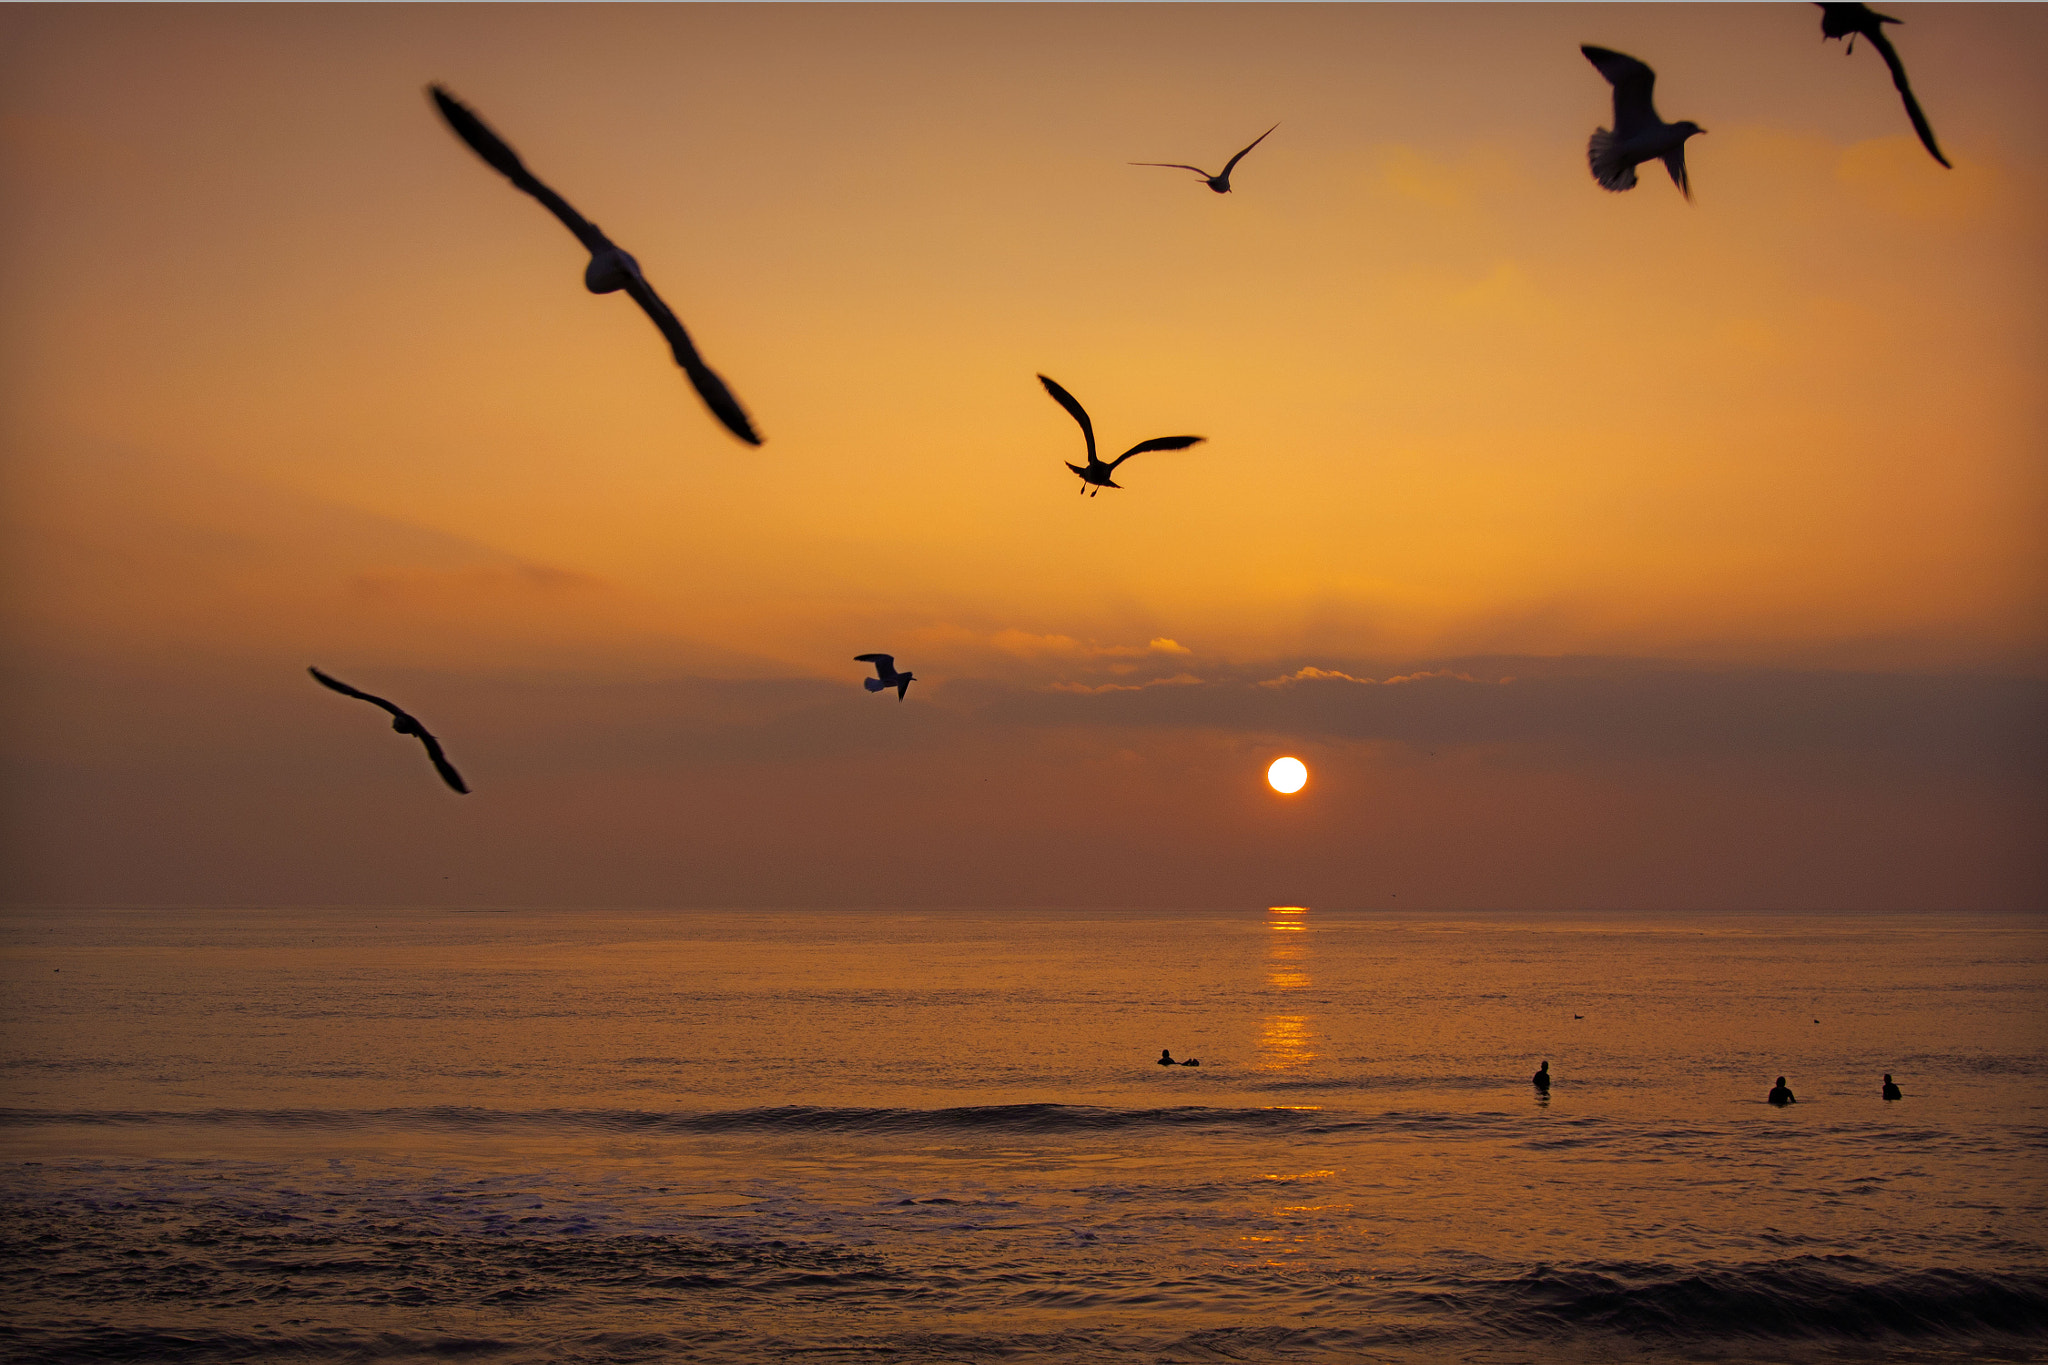 Photograph Seagulls in Flight at Sunset in Oceanside - December 8, 2012  by Rich Cruse on 500px